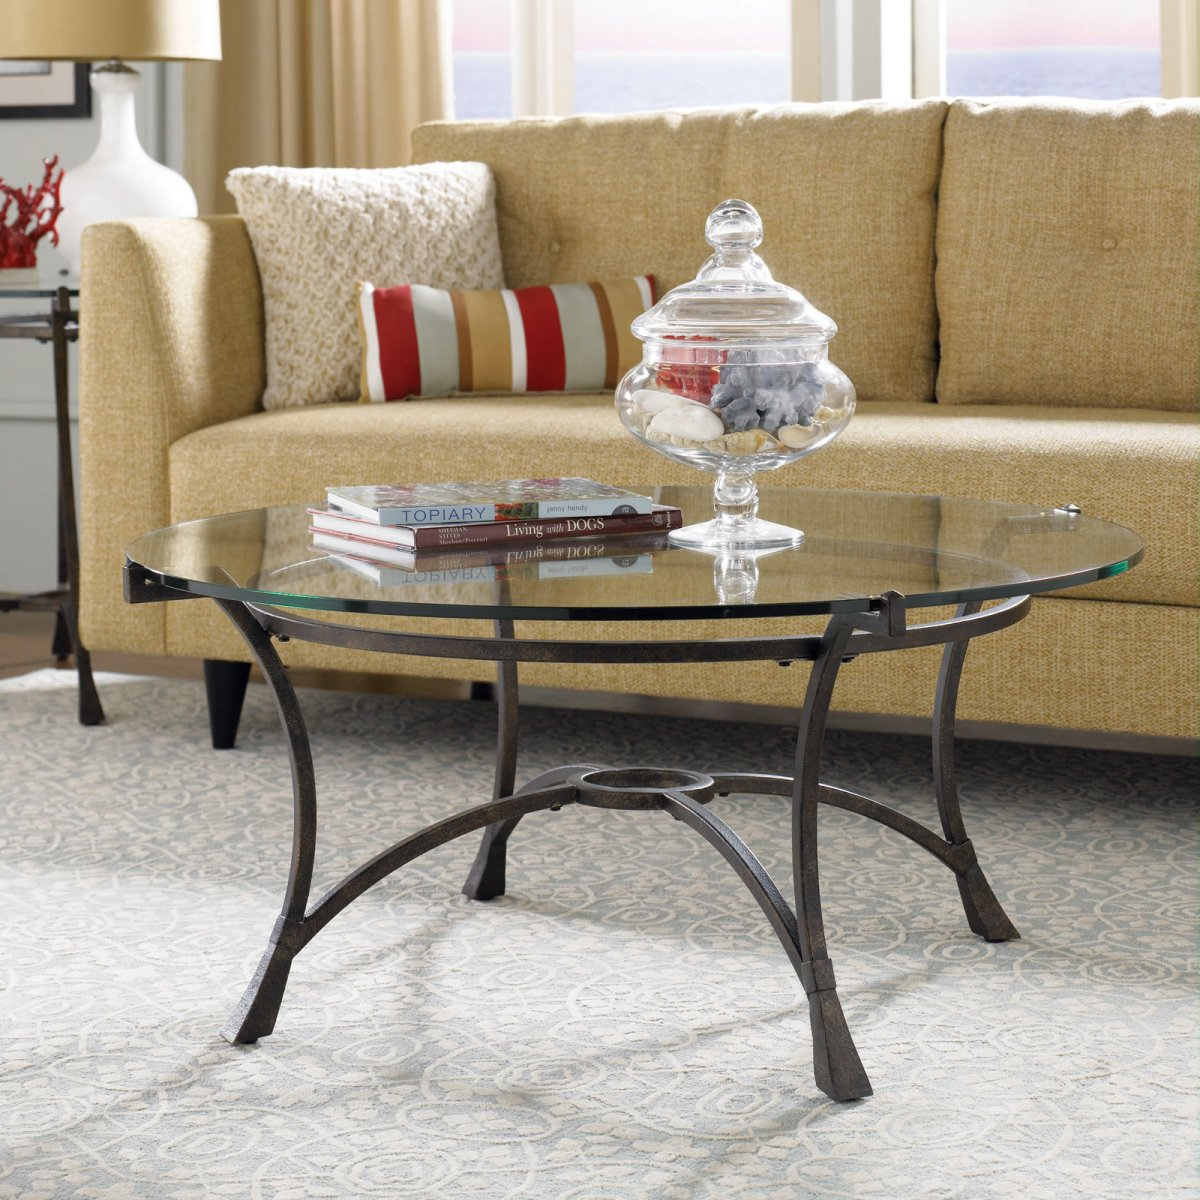 Round Glass Top Coffee Table Ideas Decorating Glass Coffee Table How To Decorate A Glass Top Coffee Table Round Coffee Table With Glass Top (View 9 of 10)